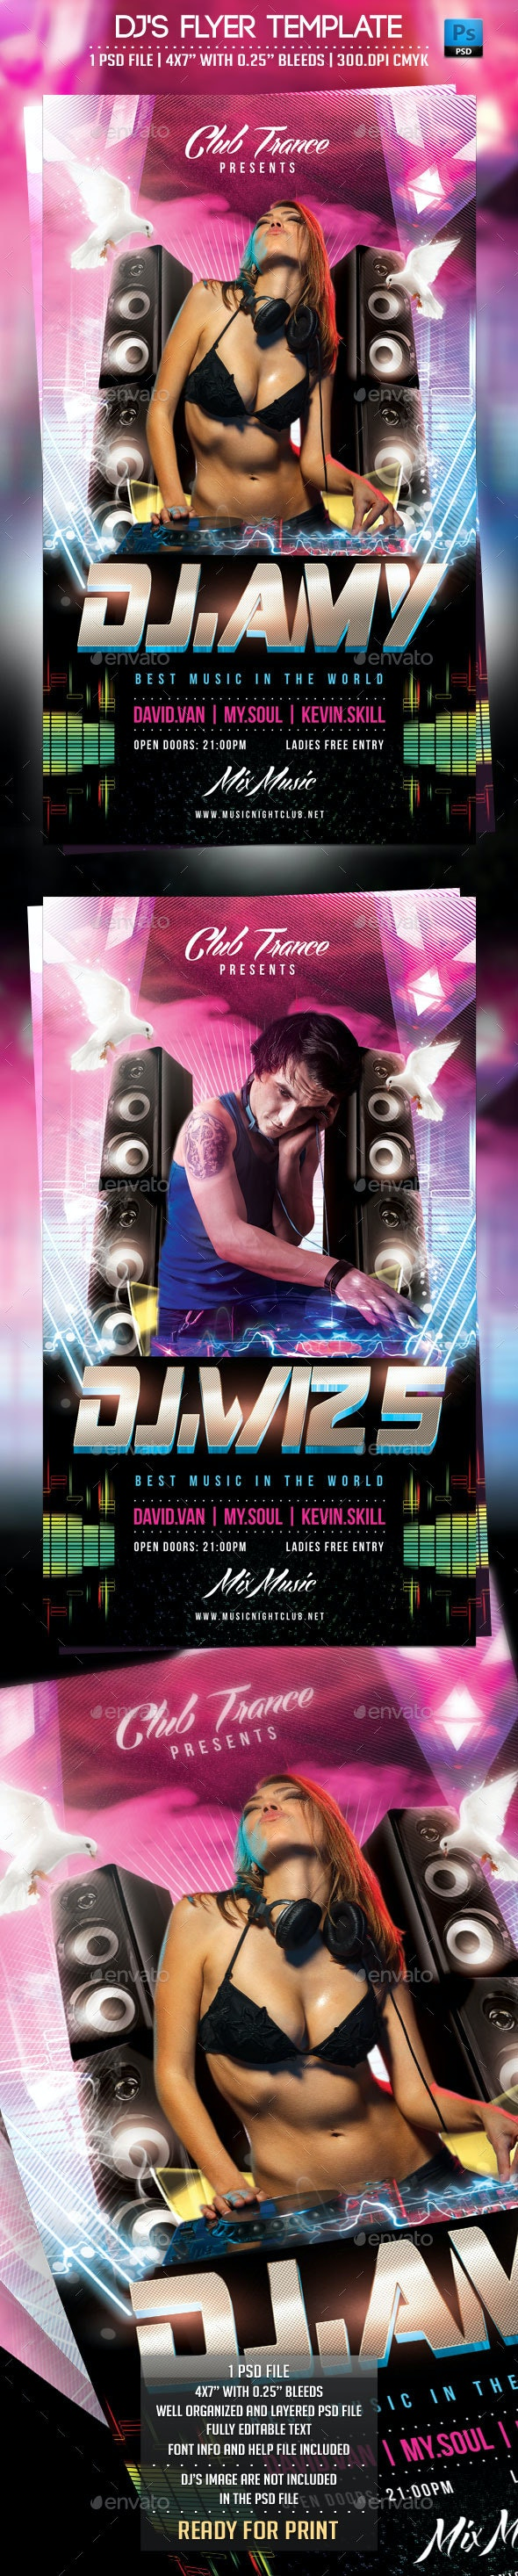 DJ's Flyer Template - Clubs & Parties Events